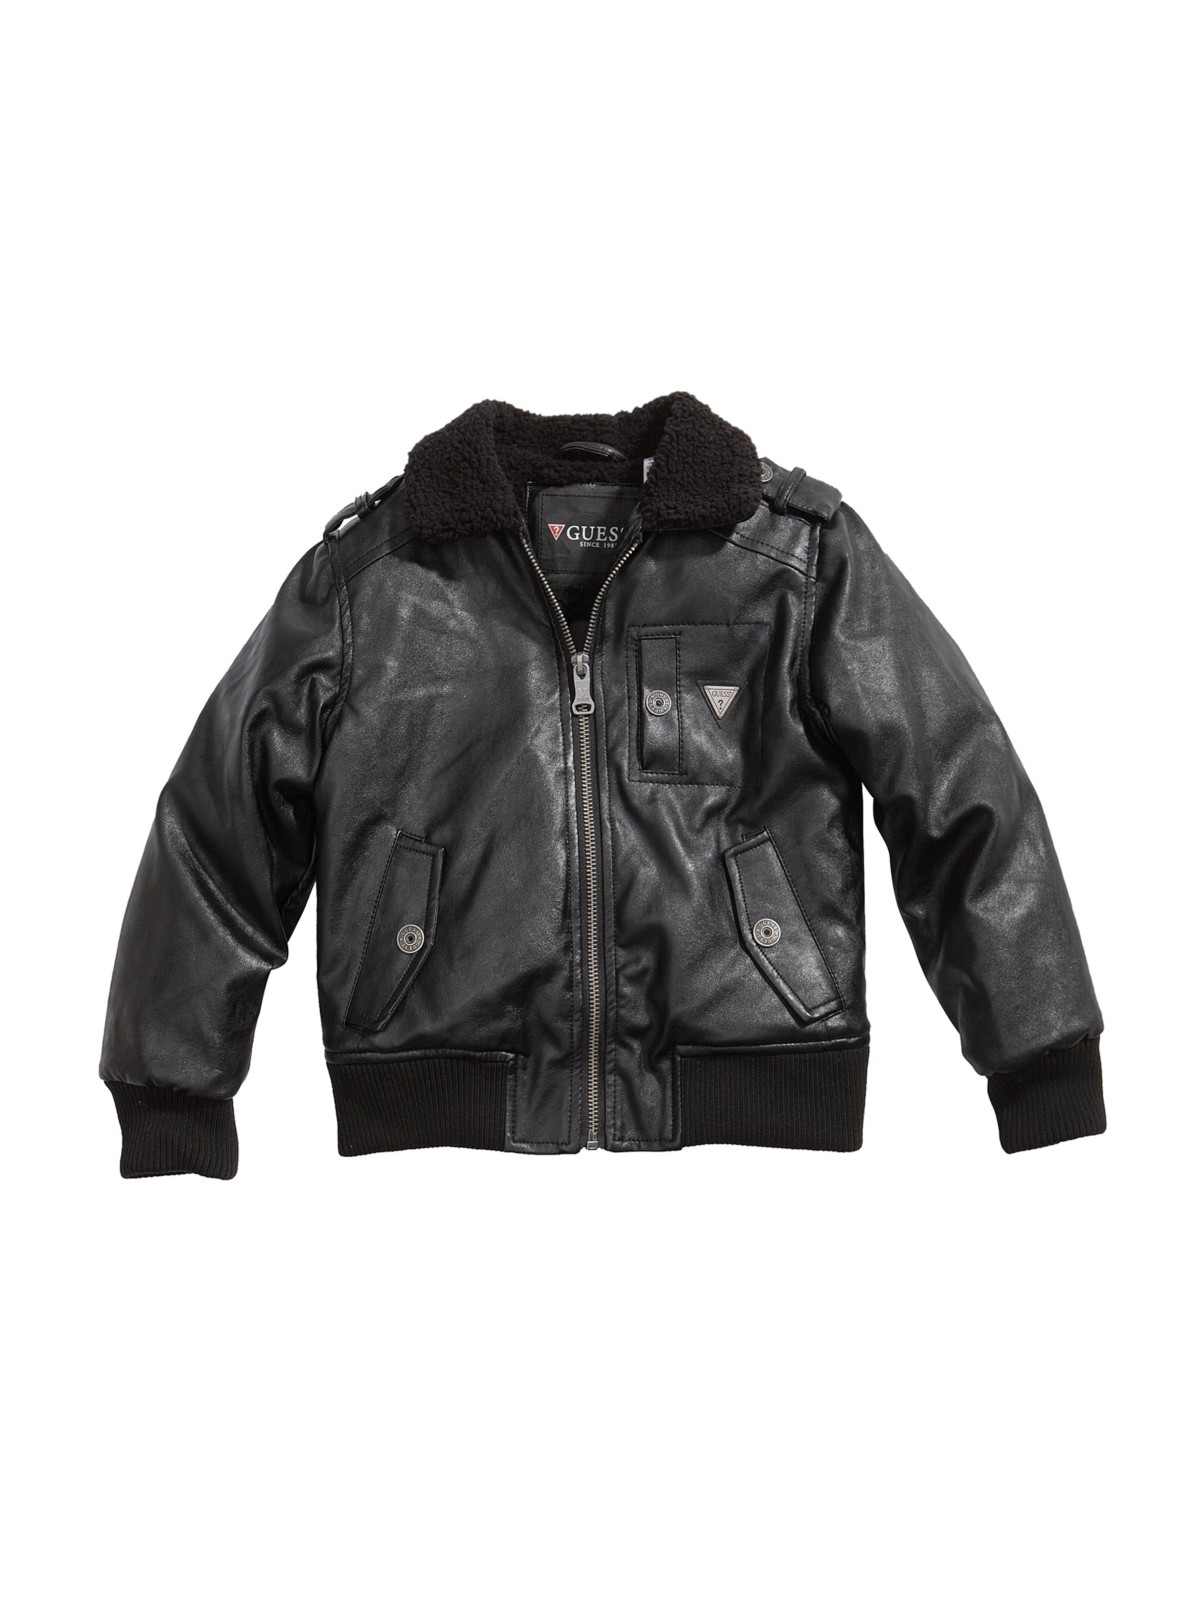 A Faux Real Deal: Things Need To Know About Faux Leather-Based Jacket